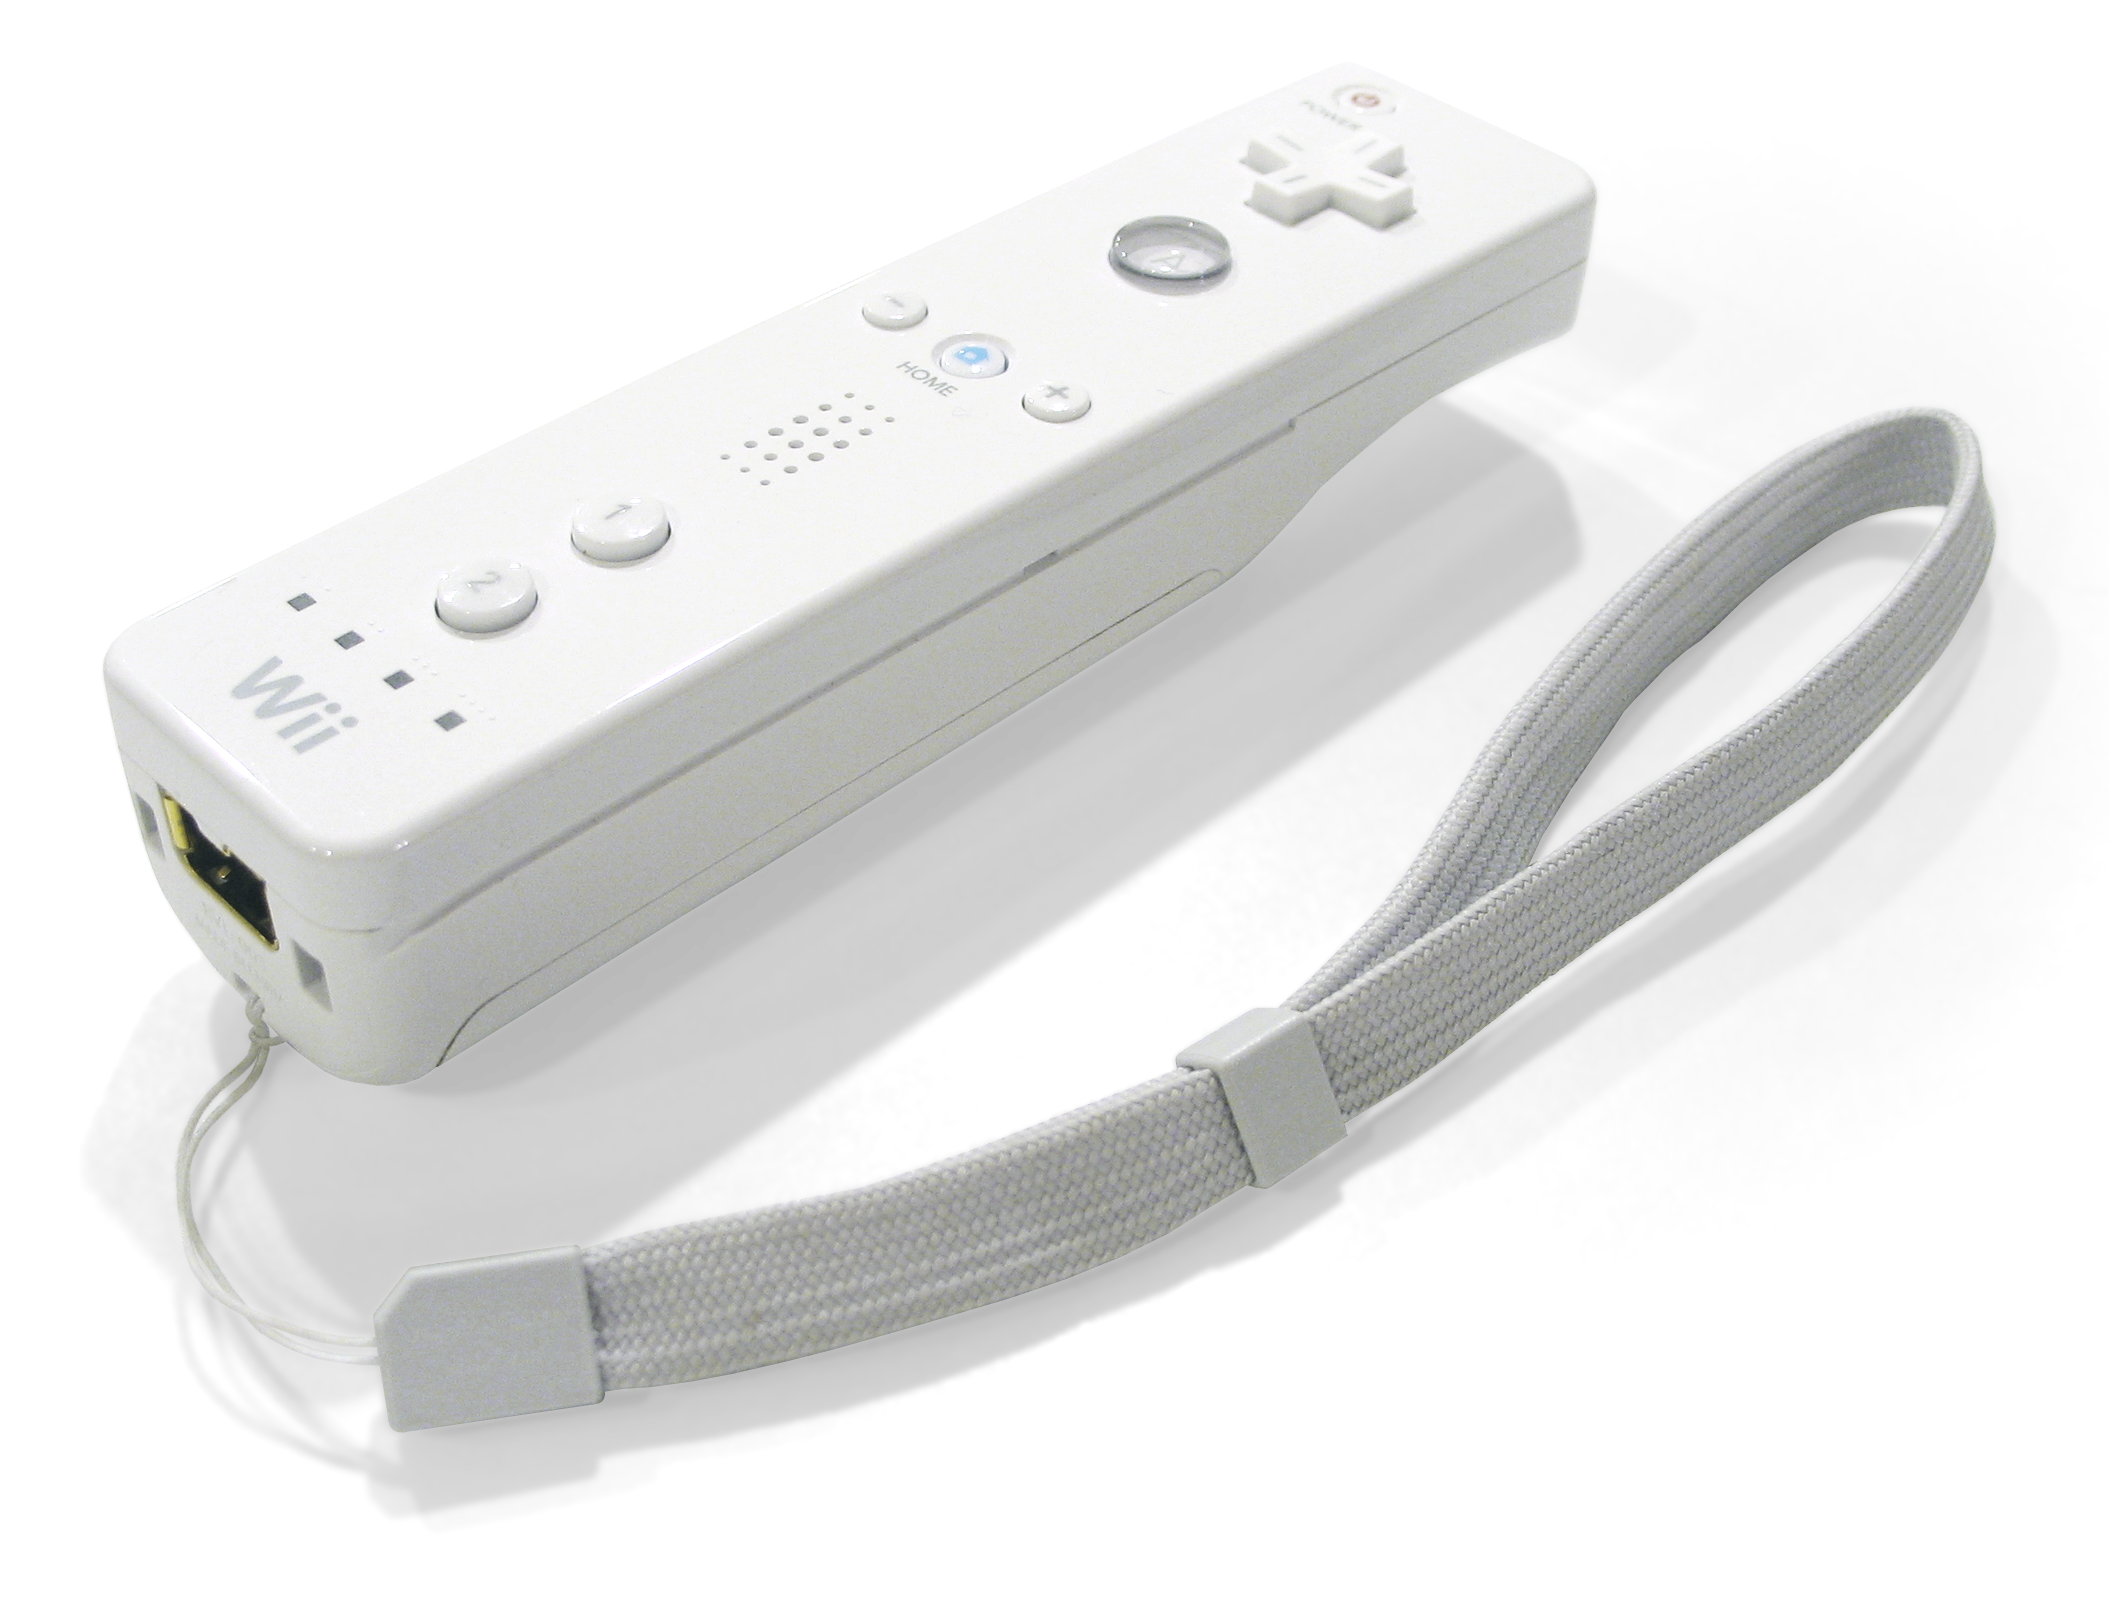 File:Wiimote.png.